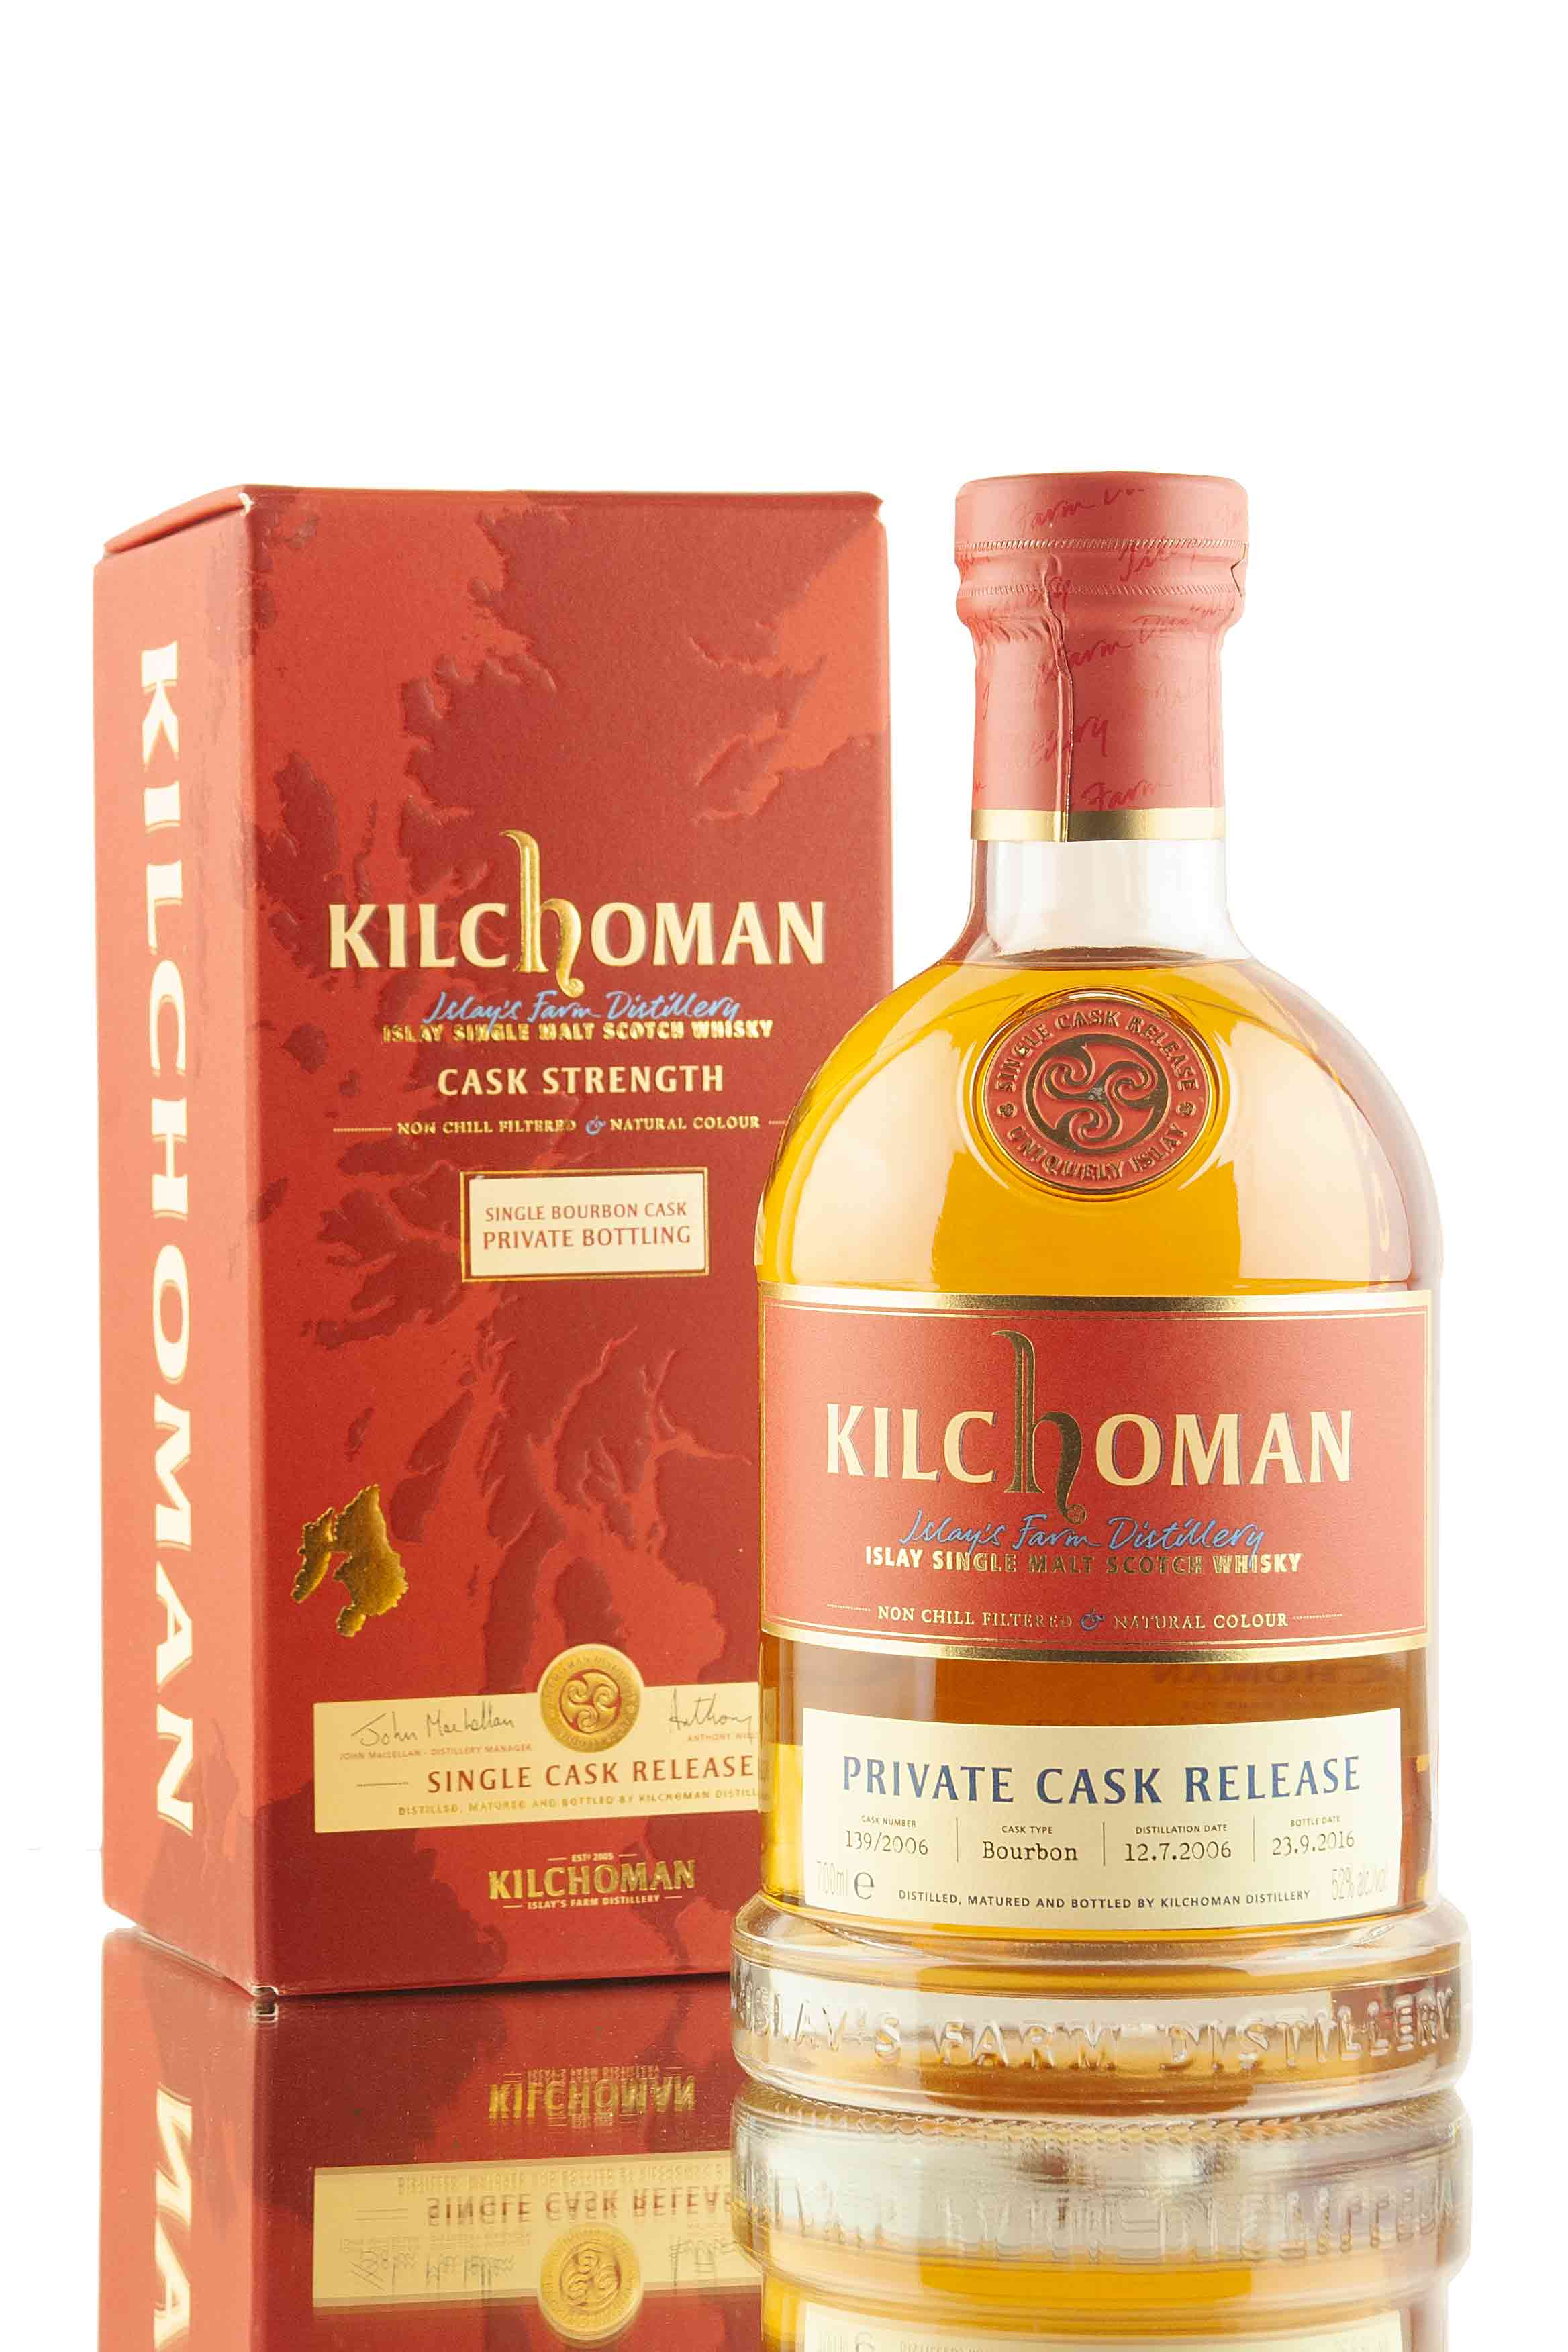 Kilchoman 10 Year Old - 2006 / Private Cask Release #139/2006 | Abbey Whisky